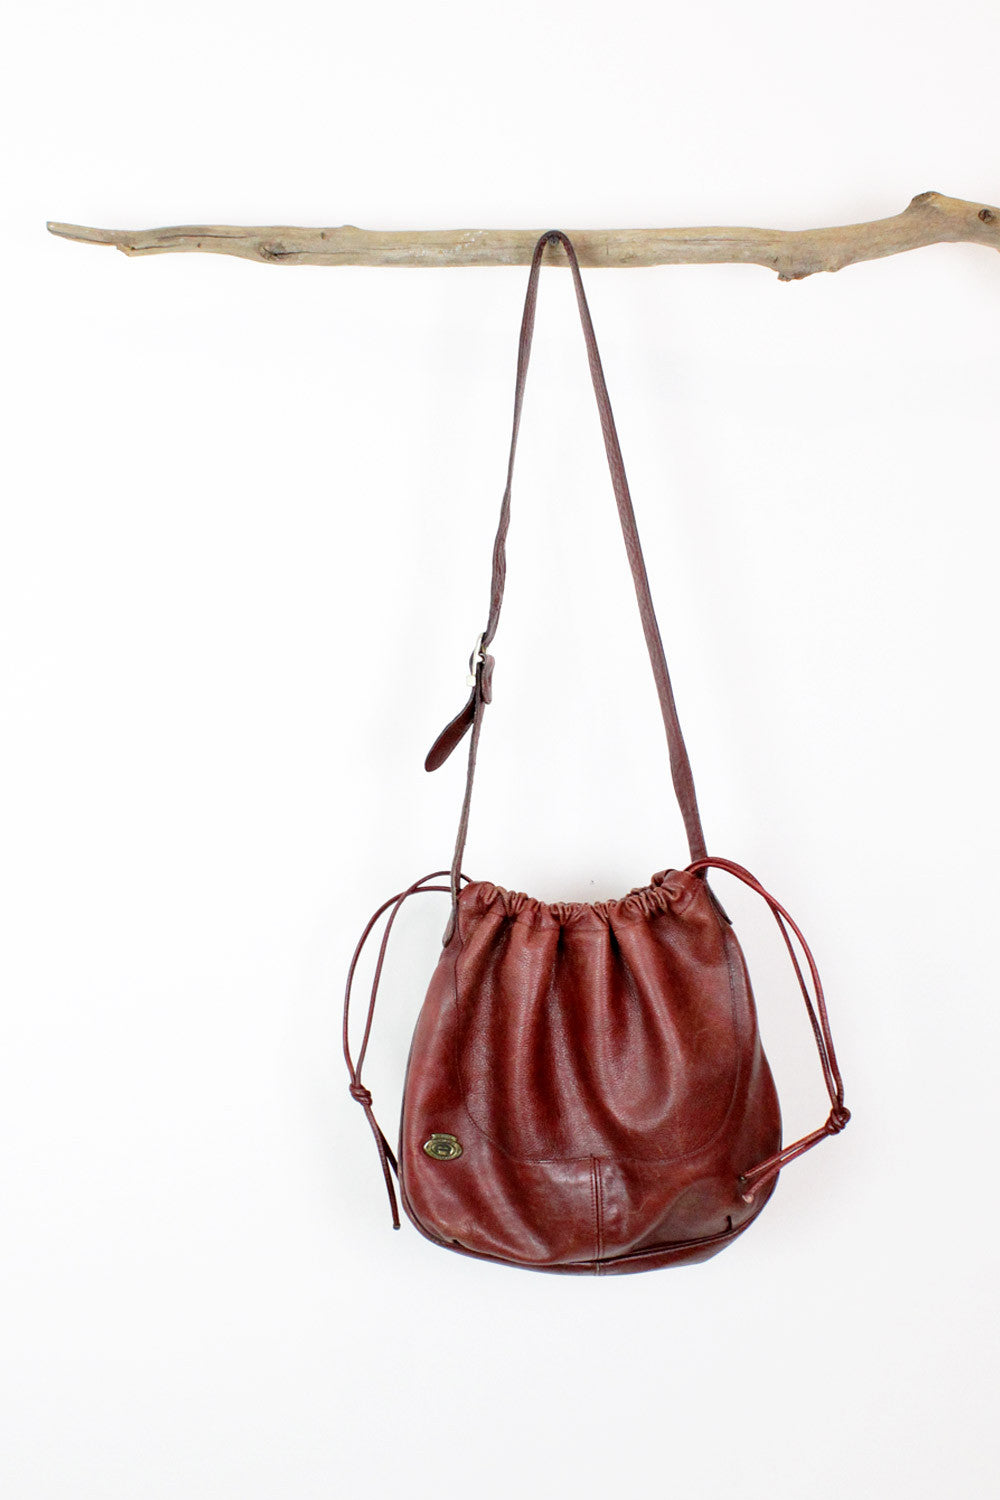 Etienne Aigner Bucket Bag